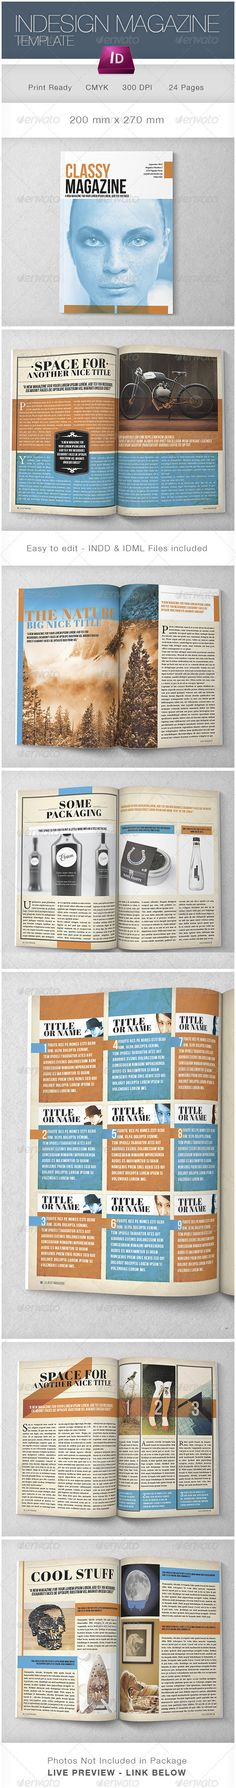 Indesign Classy Magazine  #GraphicRiver        LIVE PREVIEW: issuu /luuqas/docs/classy?mode=window&backgroundColor=%23222222  This is a professional and clean InDesign magazine template. It contains 24 pages. Easy to edit in InDesign and customize it according to your needs. Also suitable for your corporate / customer magazine or any other type of magazine. Add as many pages as you like.   Photos used in the previews are not included!   Fonts used:  Abril Fatface  .myfonts…